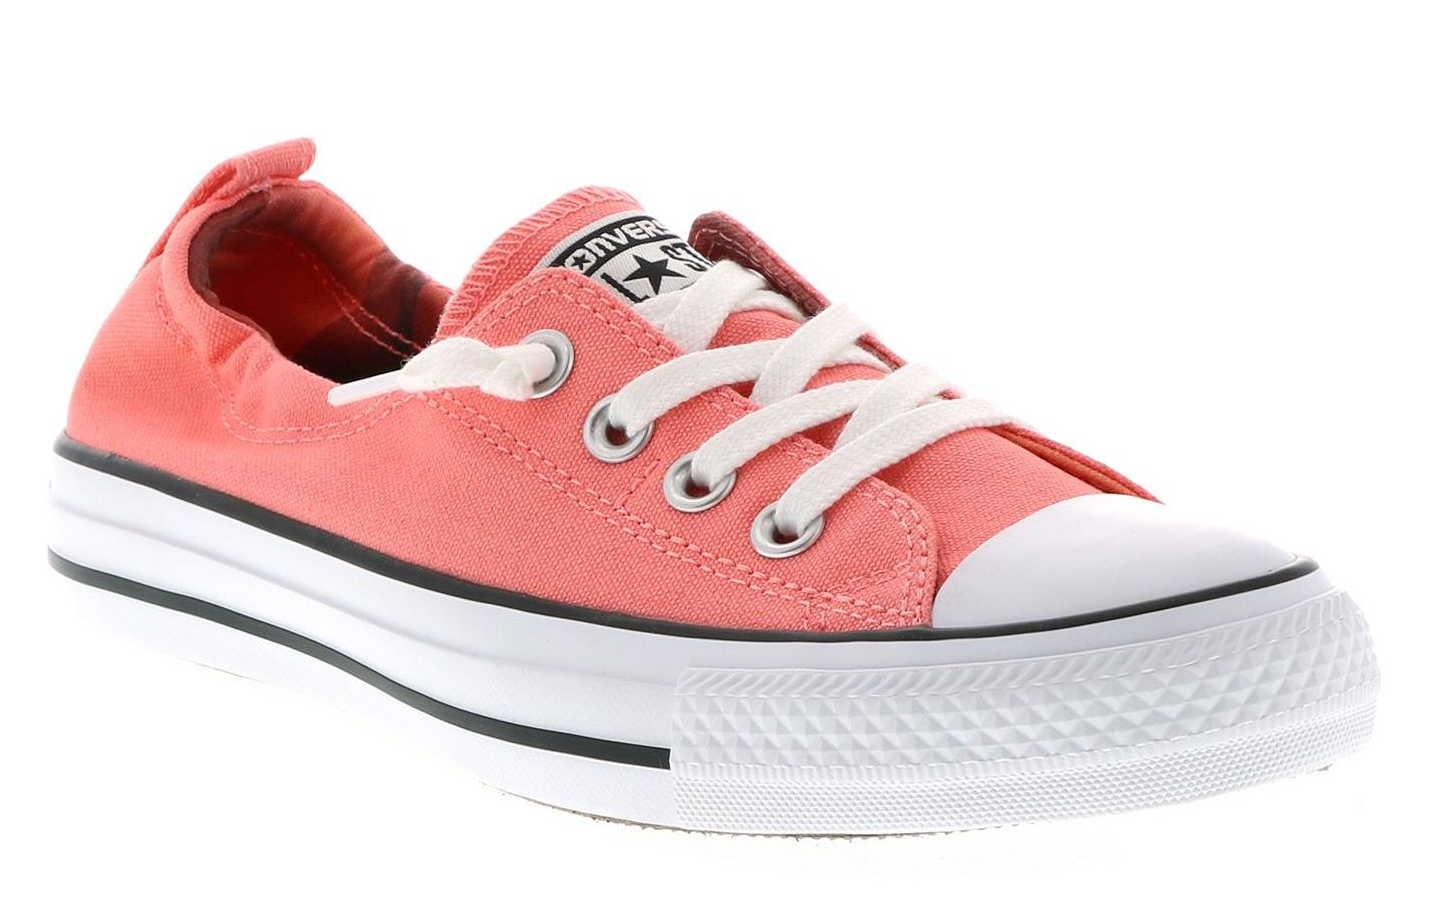 25d3681c5c2d Converse Women s CT AS Shoreline Slip Sneakers